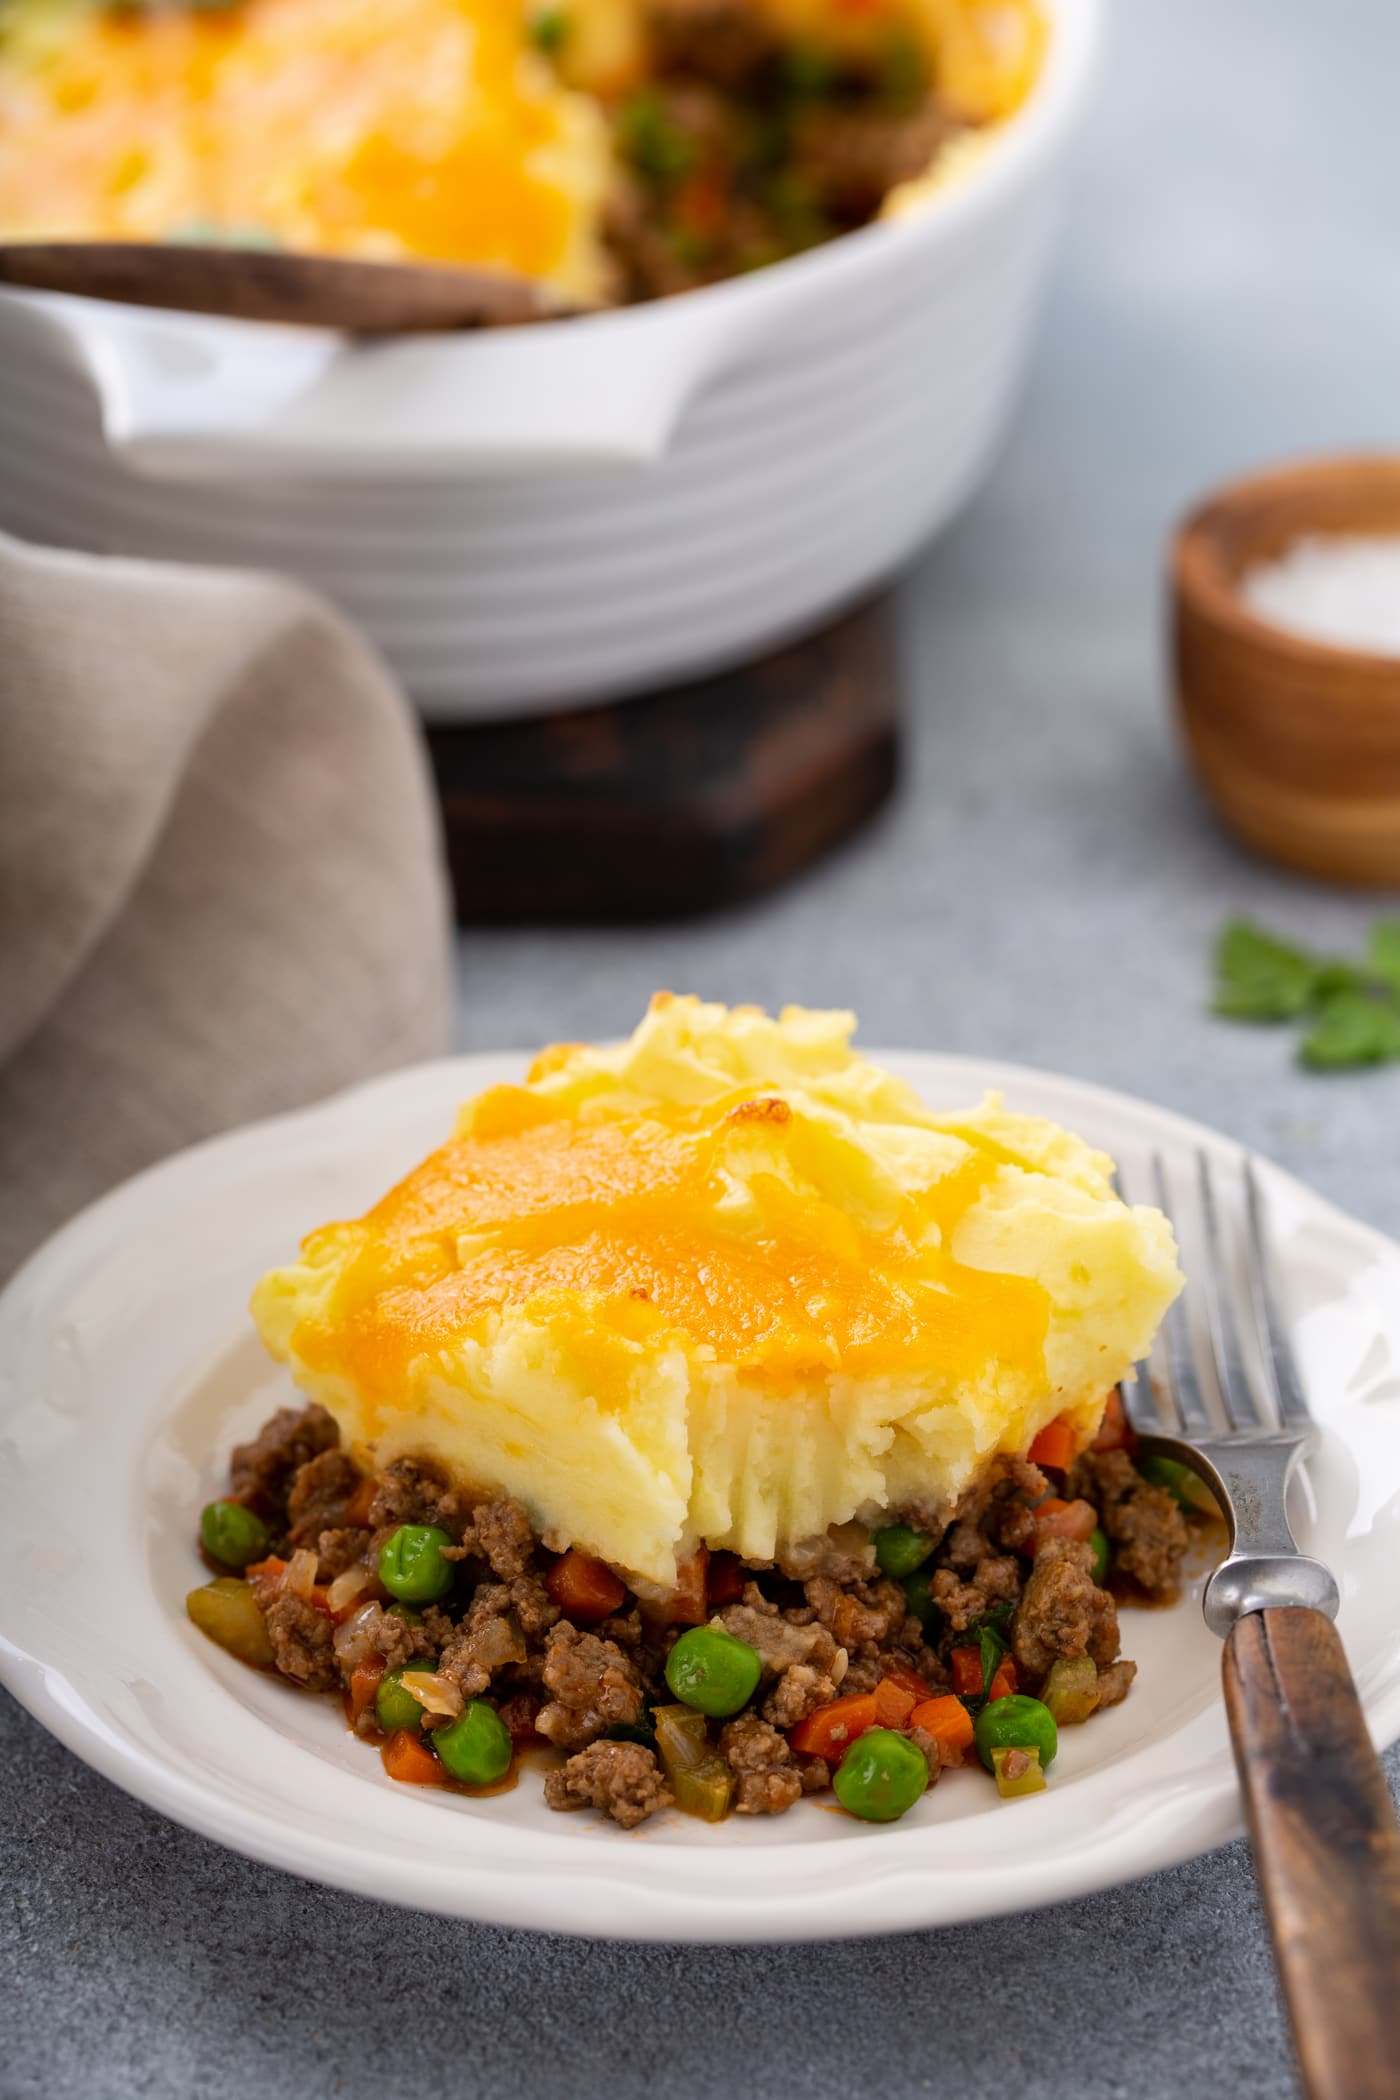 A serving of shepherd's pie with carrots, peas and ground beef for filling, topped with mashed potatoes and melted cheese. There is a fork resting on the plate and a napkin and a small container of salt next to it.